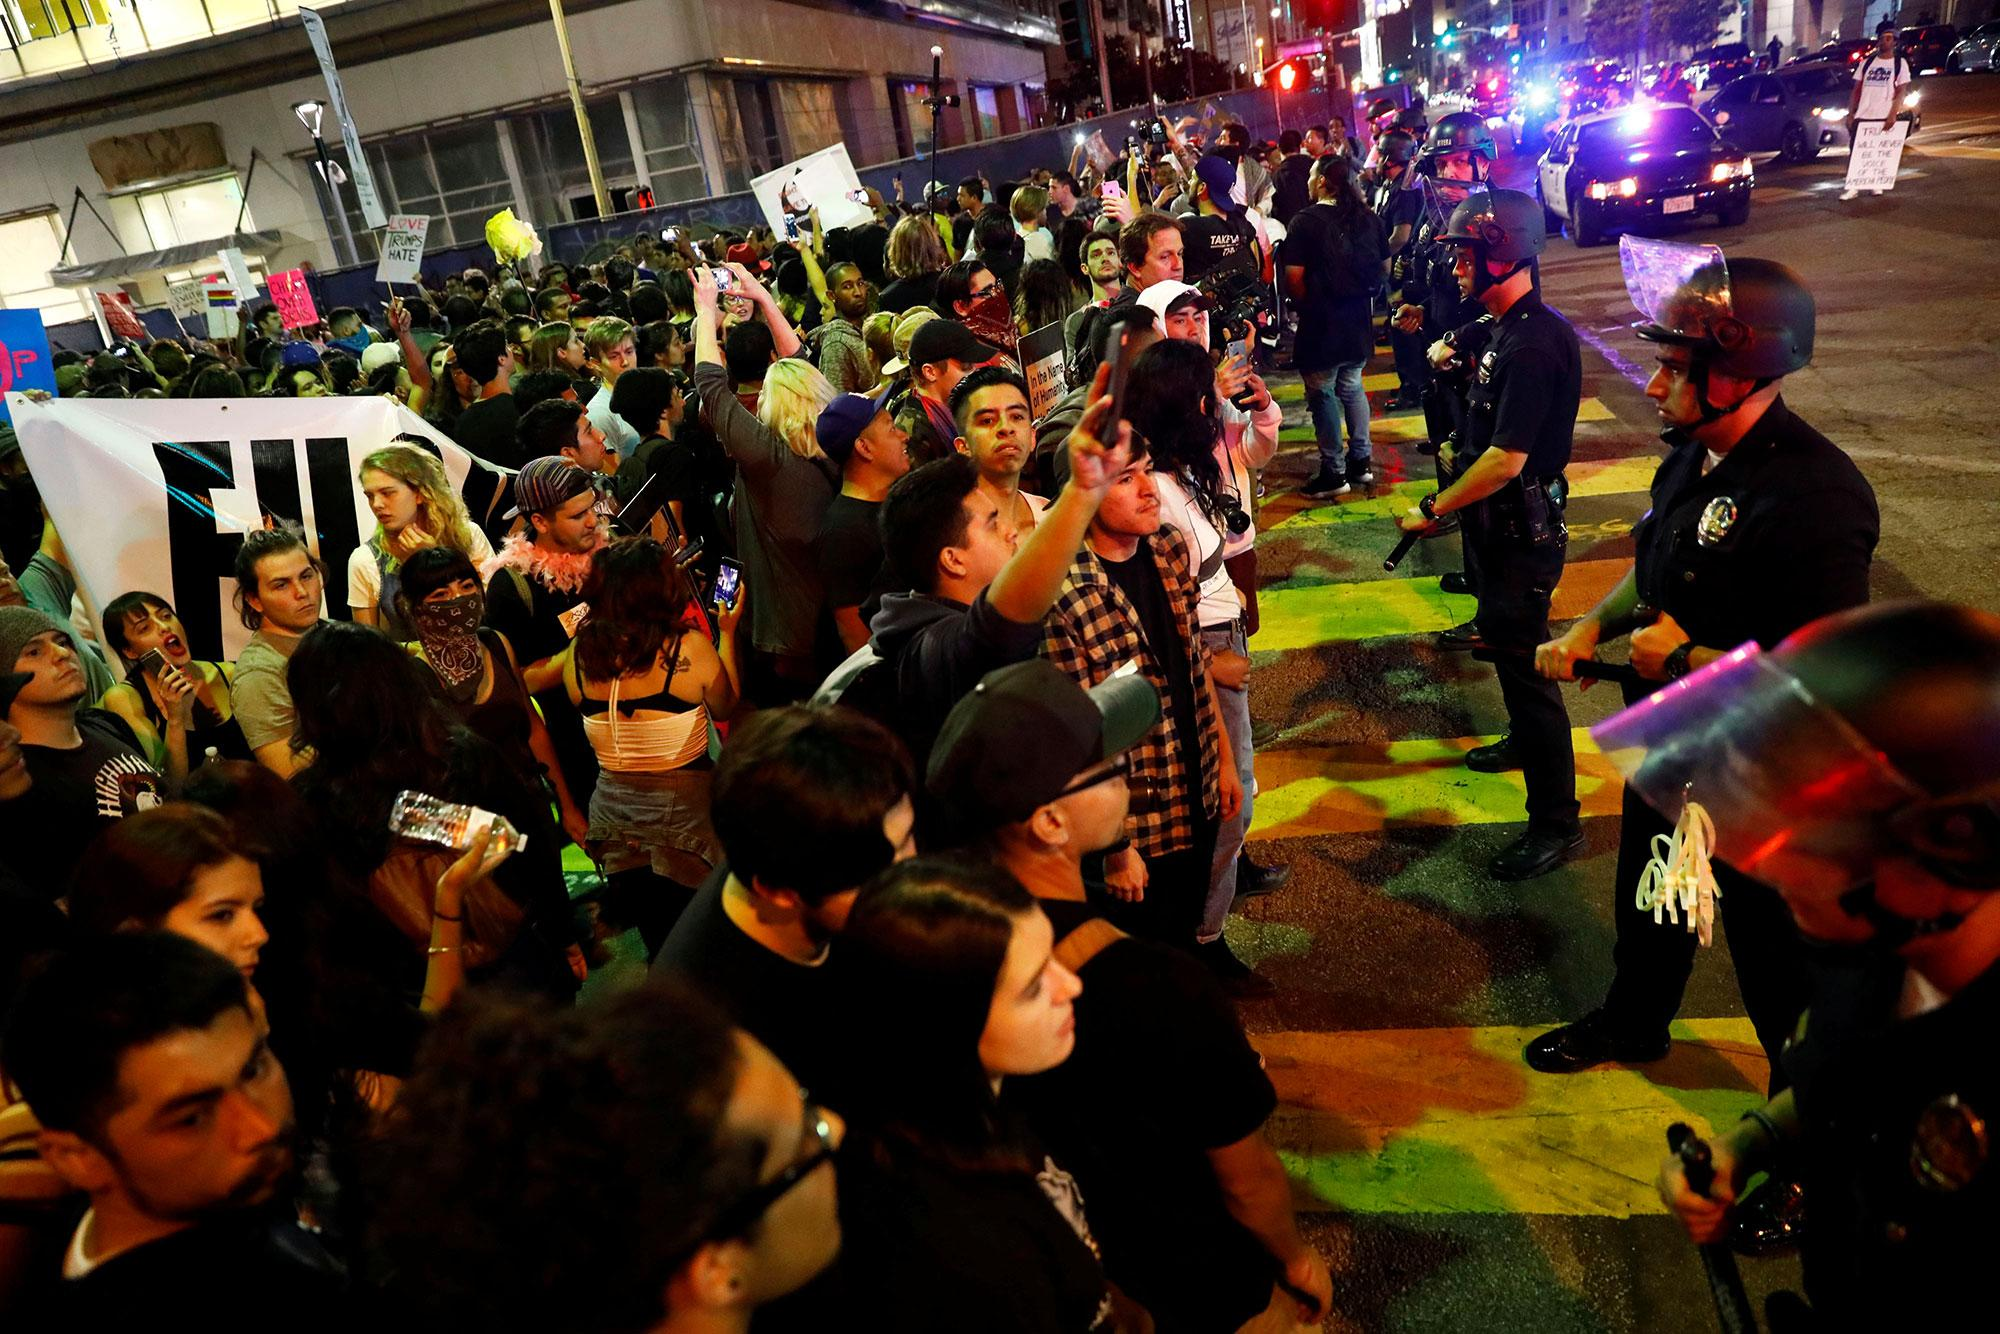 <p>Demonstrators are blocked by an LAPD skirmish line during a march through the streets of downtown Los Angeles in protest following the election of Republican Donald Trump as President of the United States in Los Angeles, Calif., on Nov. 11, 2016. (Photo: Patrick T. Fallon/Reuters) </p>